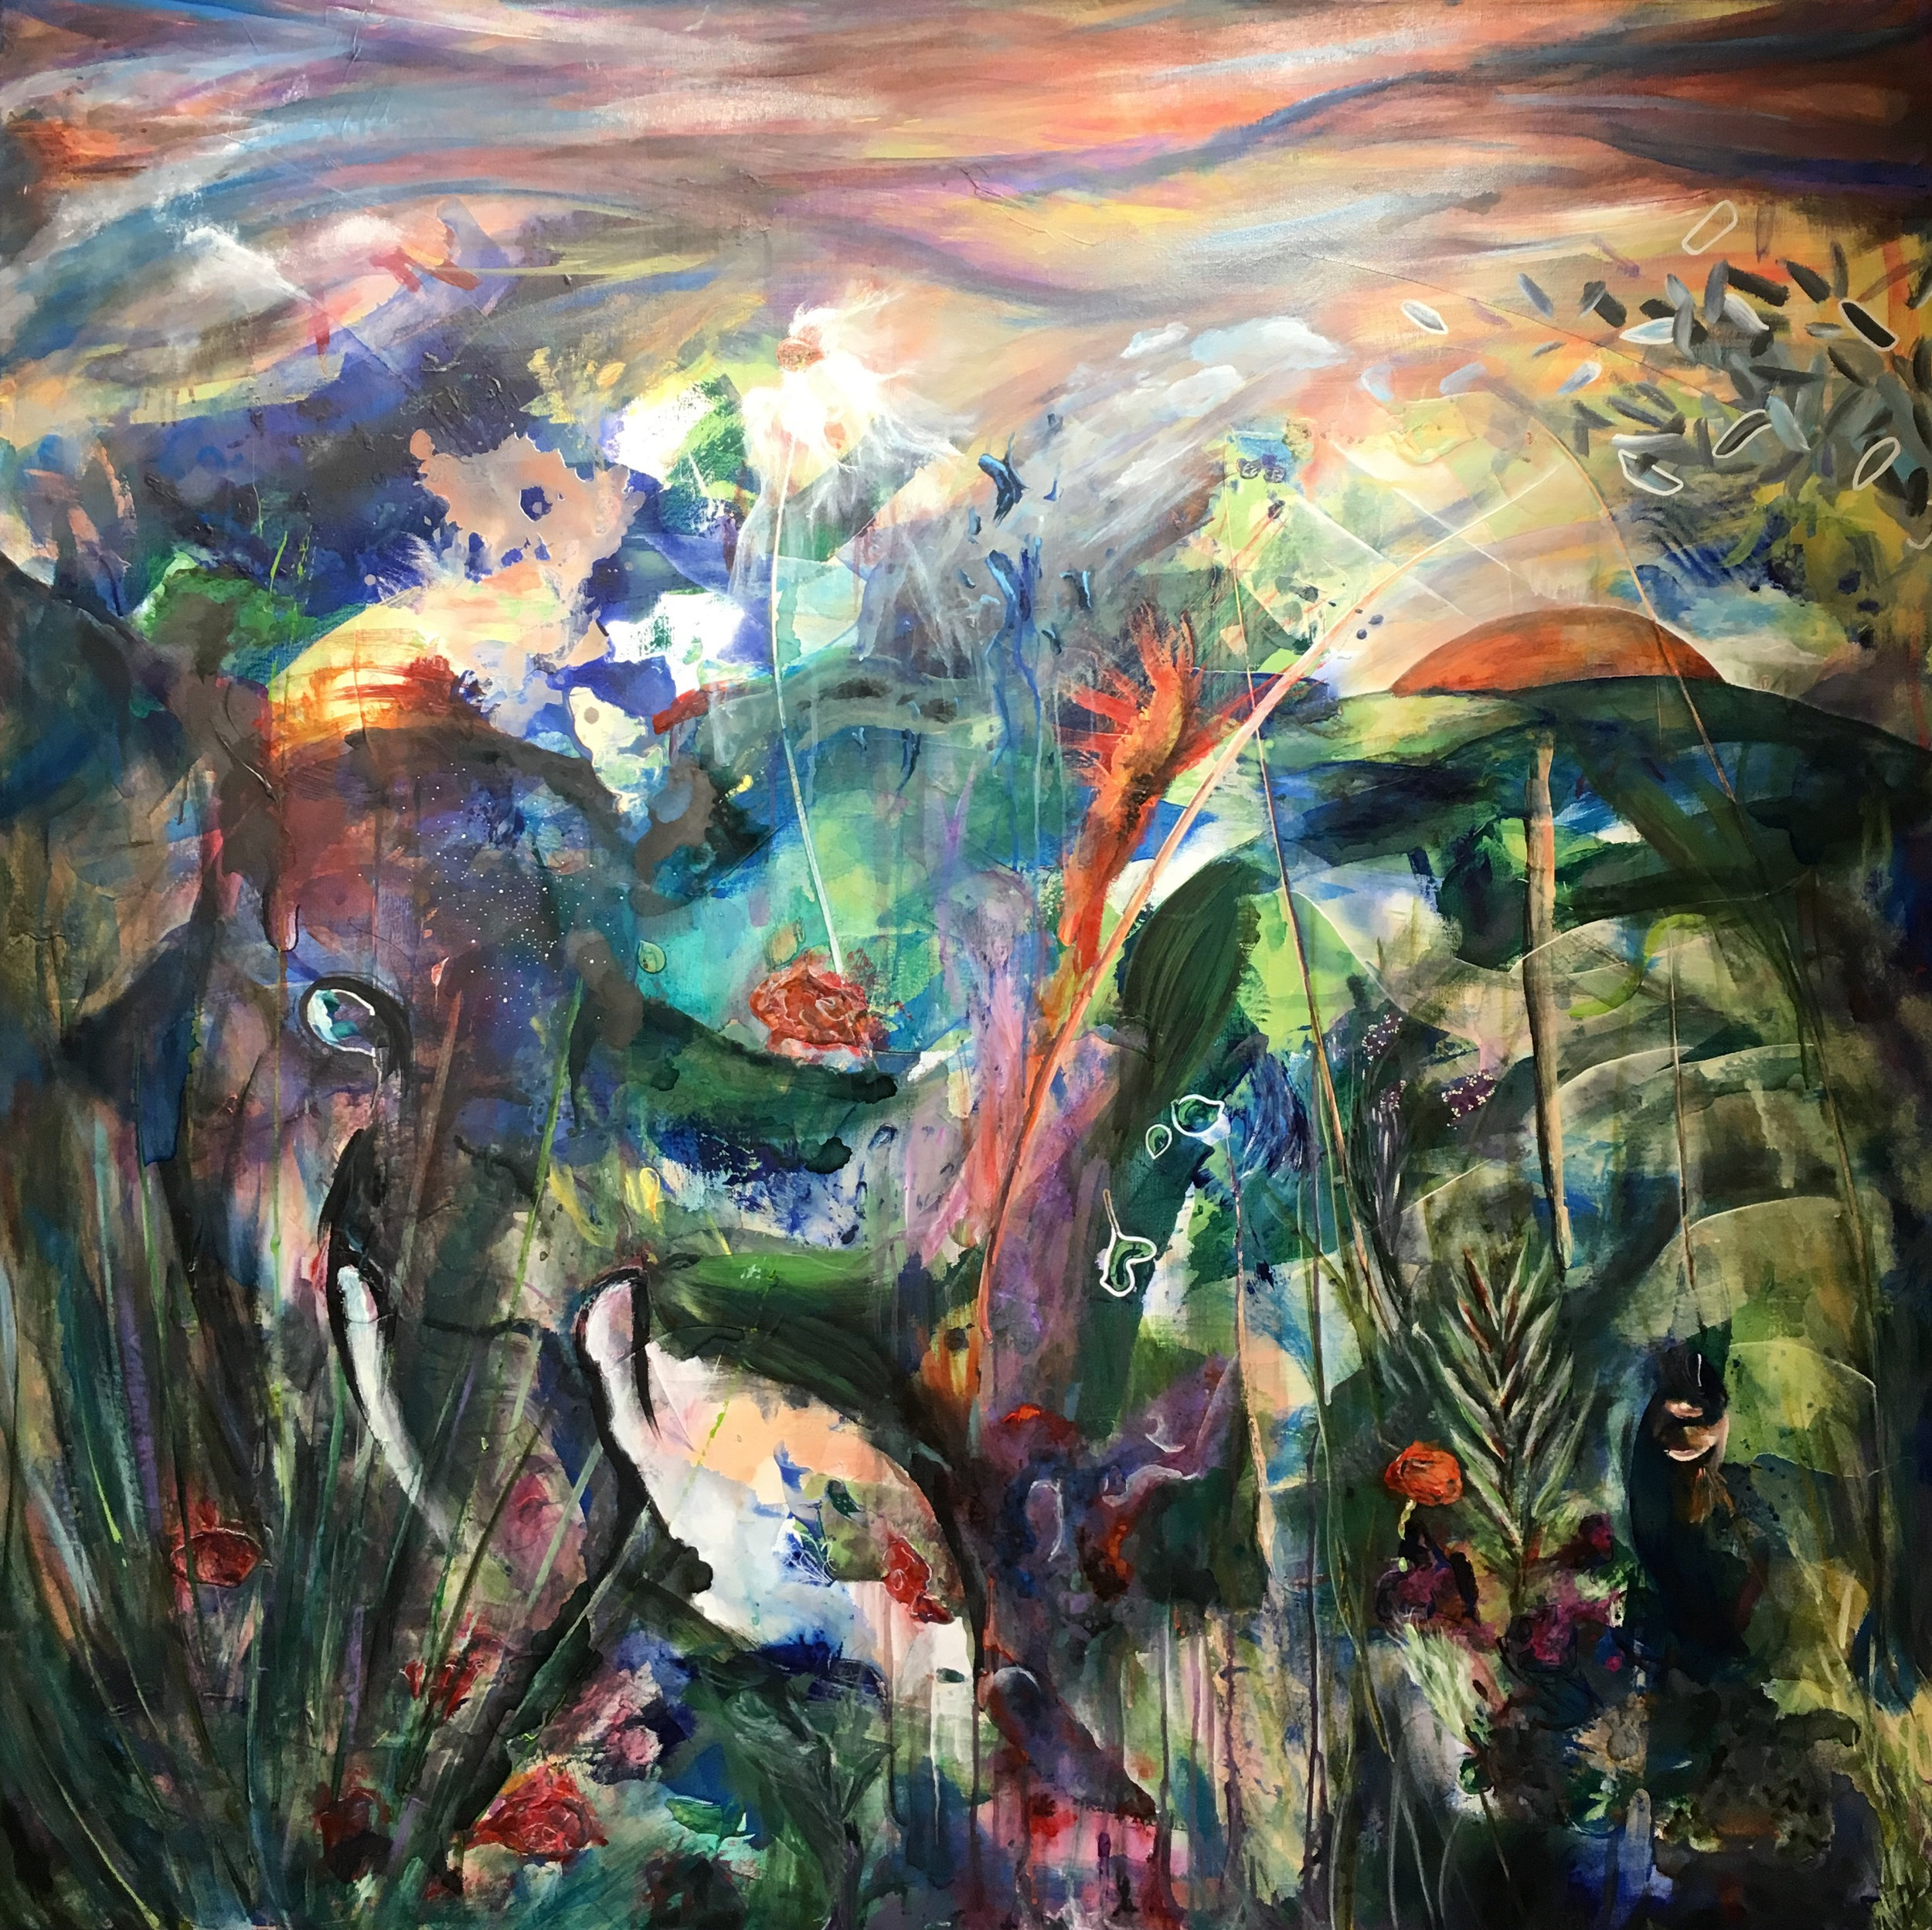 Large scale painting in private collection.